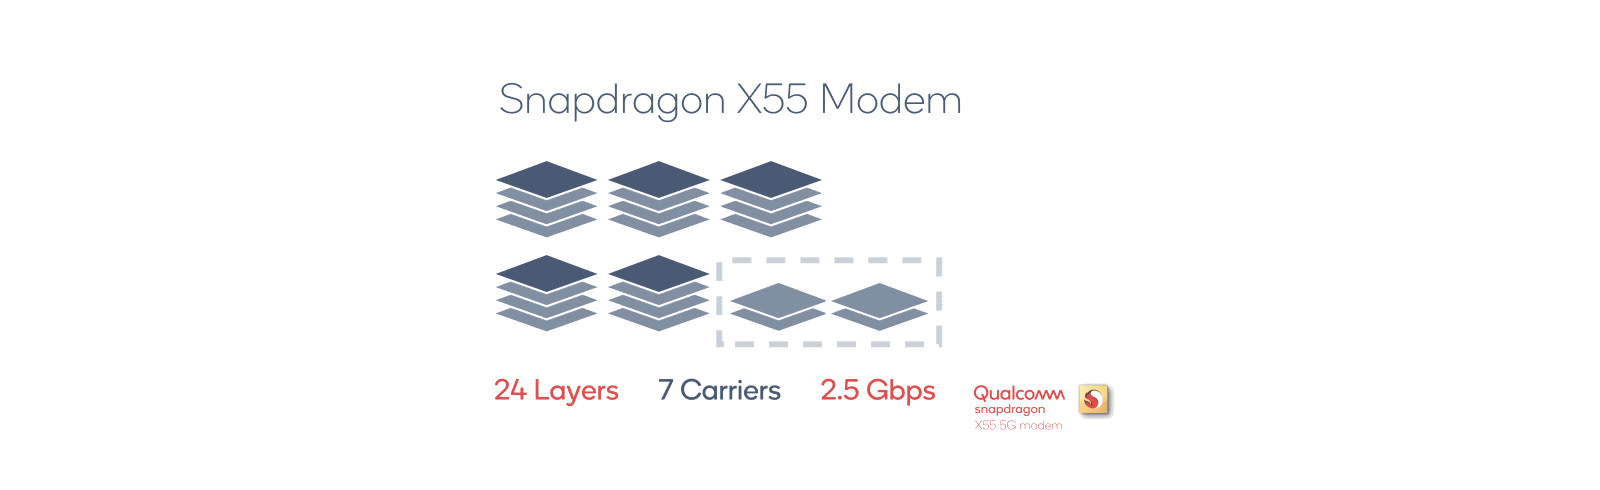 Qualcomm announces the Snapdragon X55 - its second generation 5G modem chip